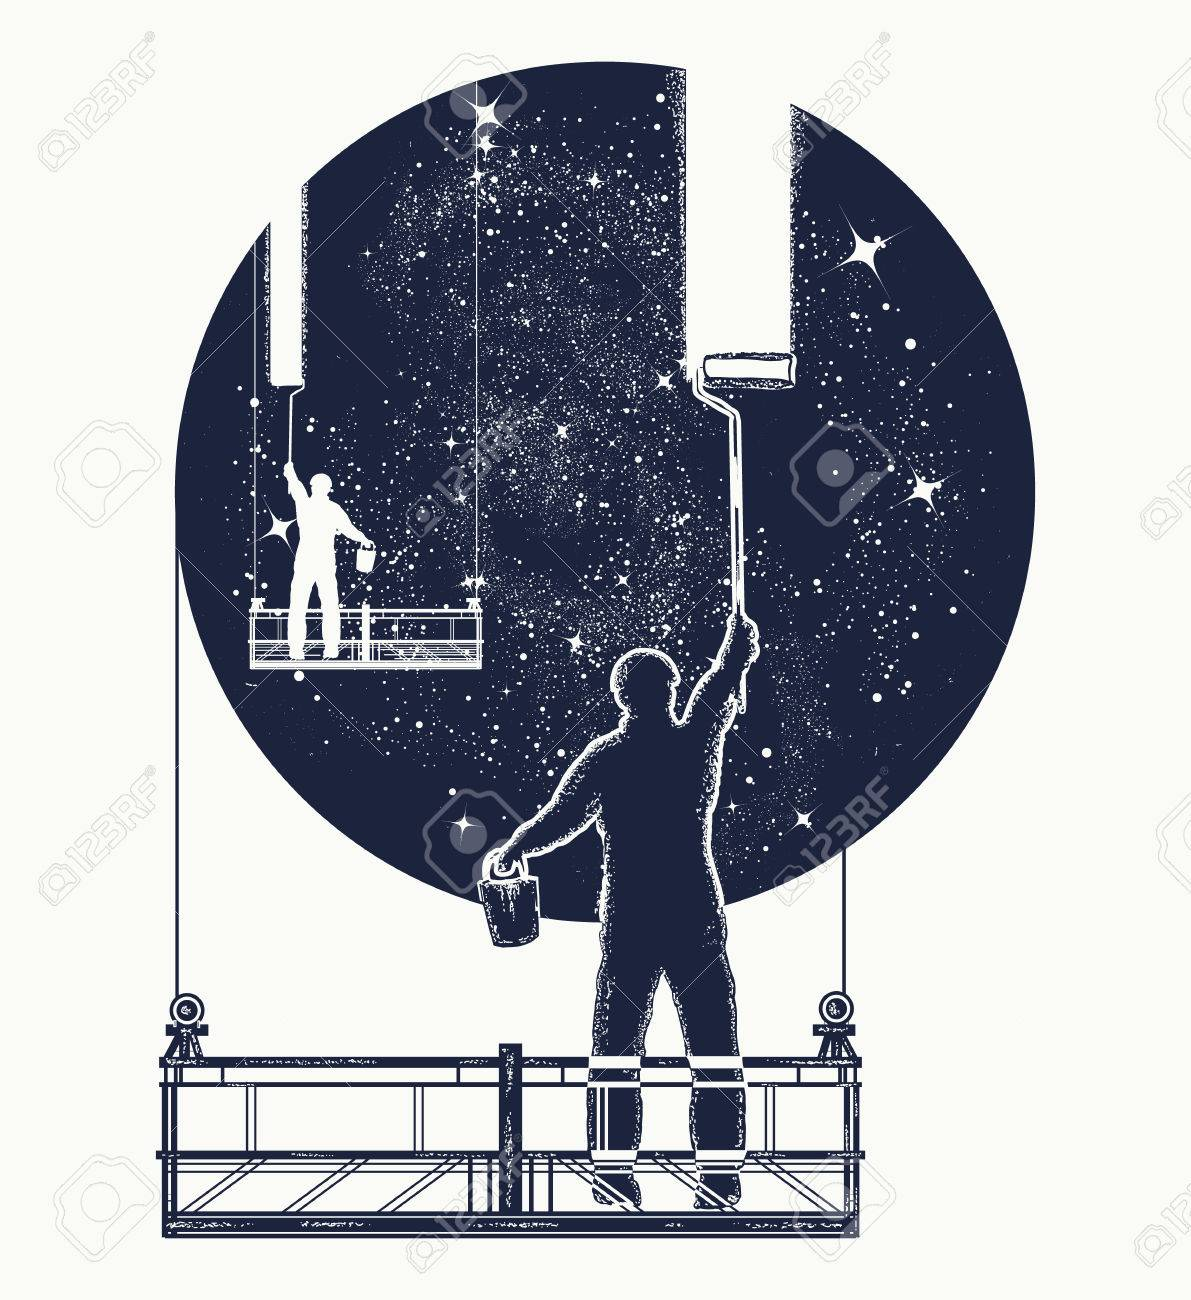 Window cleaners wash universe, surreal tattoo  Symbol of clarification,